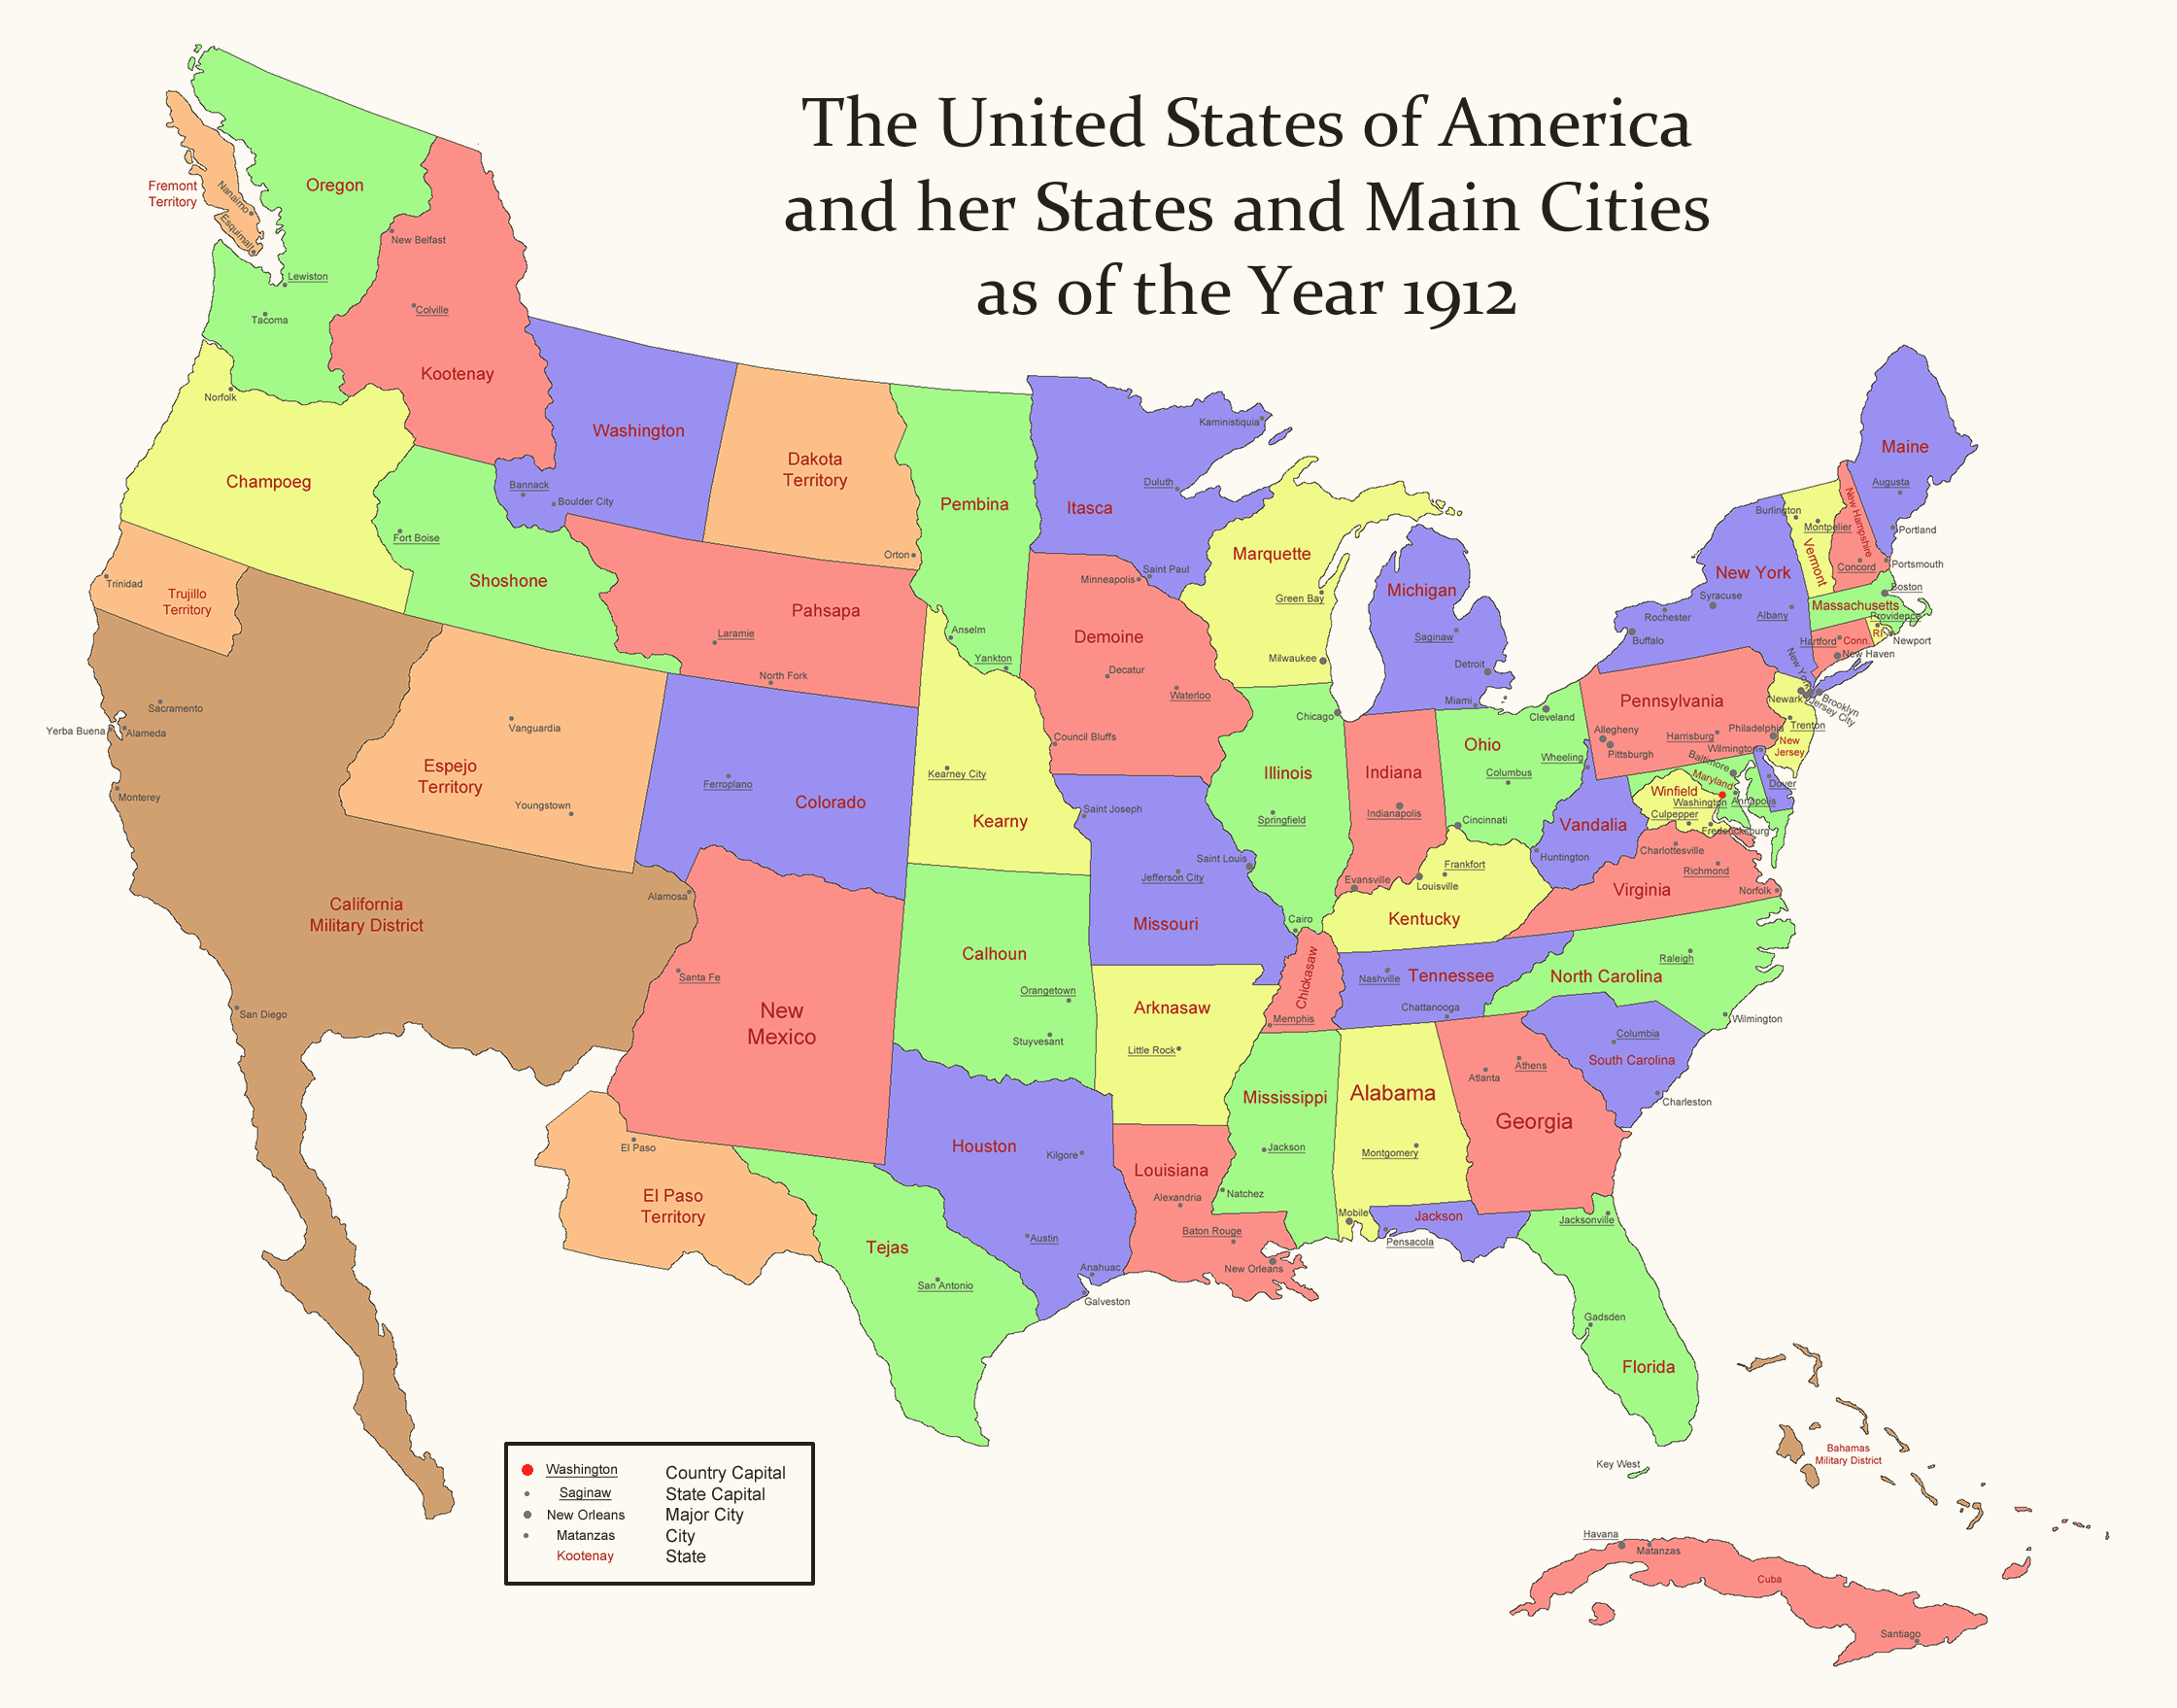 Pin By Nadnerbthegreat On Alternate Flags And Maps Historical Maps - Alternate-us-map